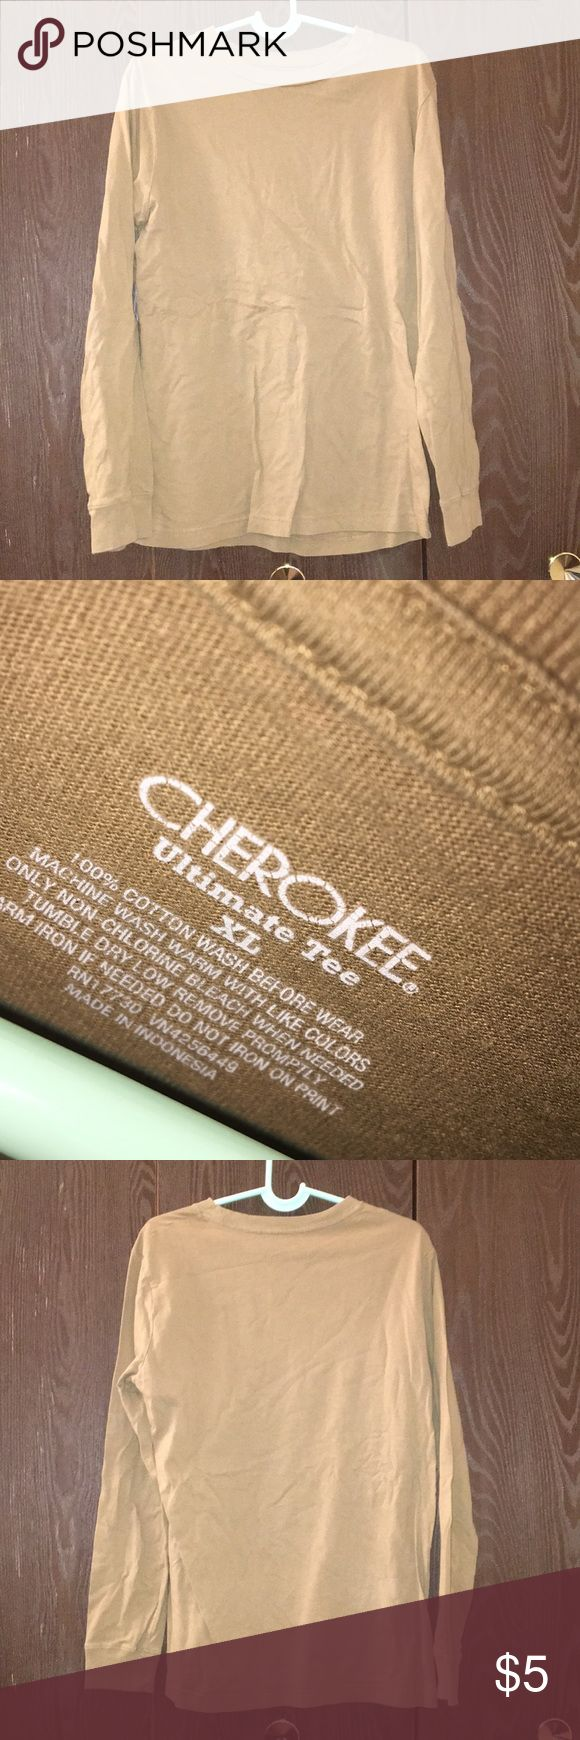 Cherokee Long Sleeve T-shirt (says youth XL) Says youth XL but fits small way better. ONLY WORN ONCE. Great condition. Tan shirt. Comfy. Stretchy. Durable. Cherokee Shirts Tees - Long Sleeve